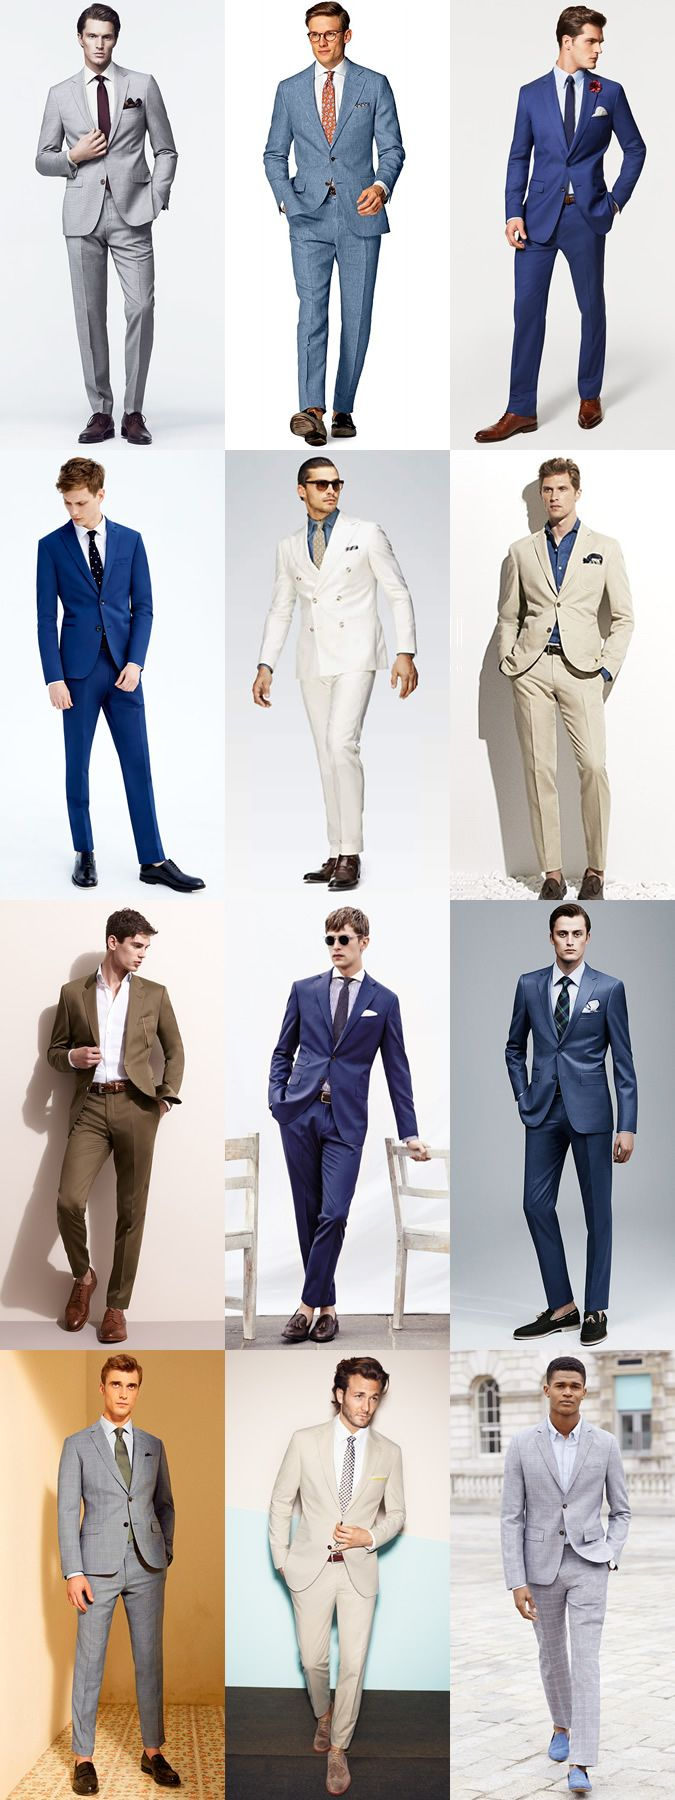 Men's Summer Wedding Outfit Inspiration TwoPiece Suits